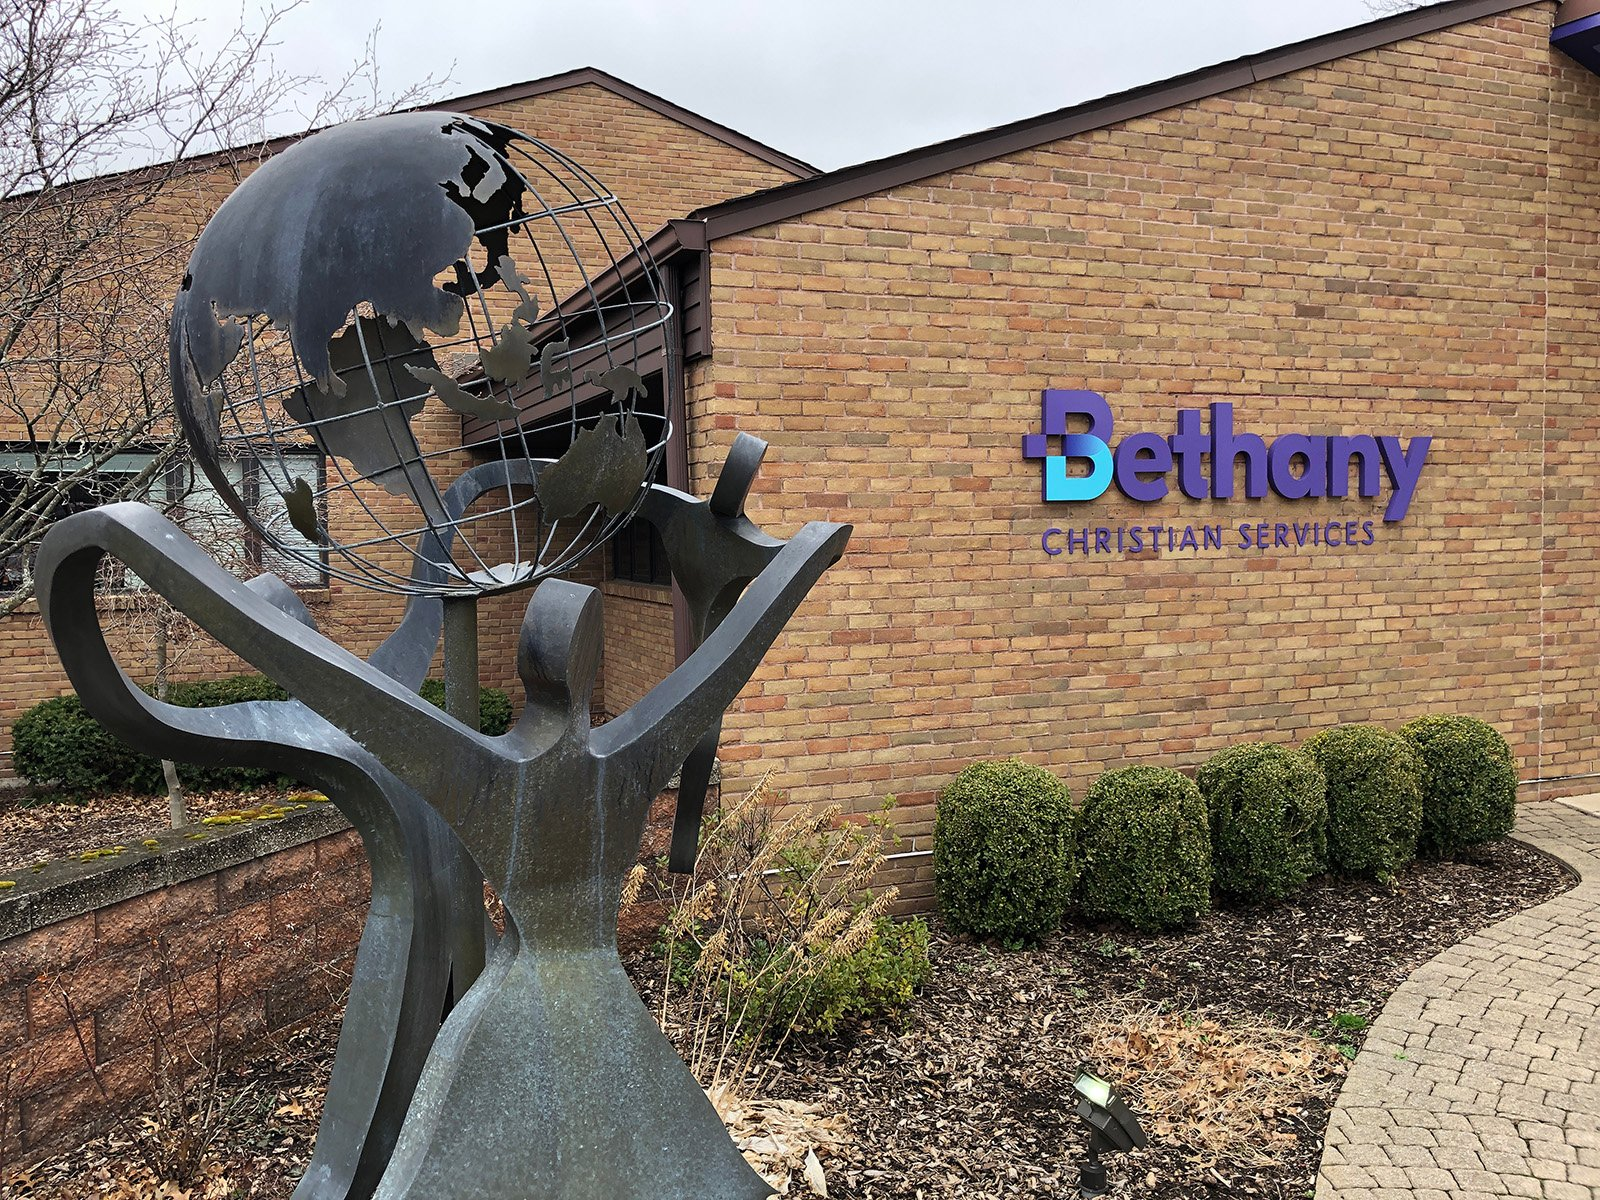 Bethany Christian Services headquarters in Grand Rapids, Michigan. Photo courtesy of Bethany Christian Services